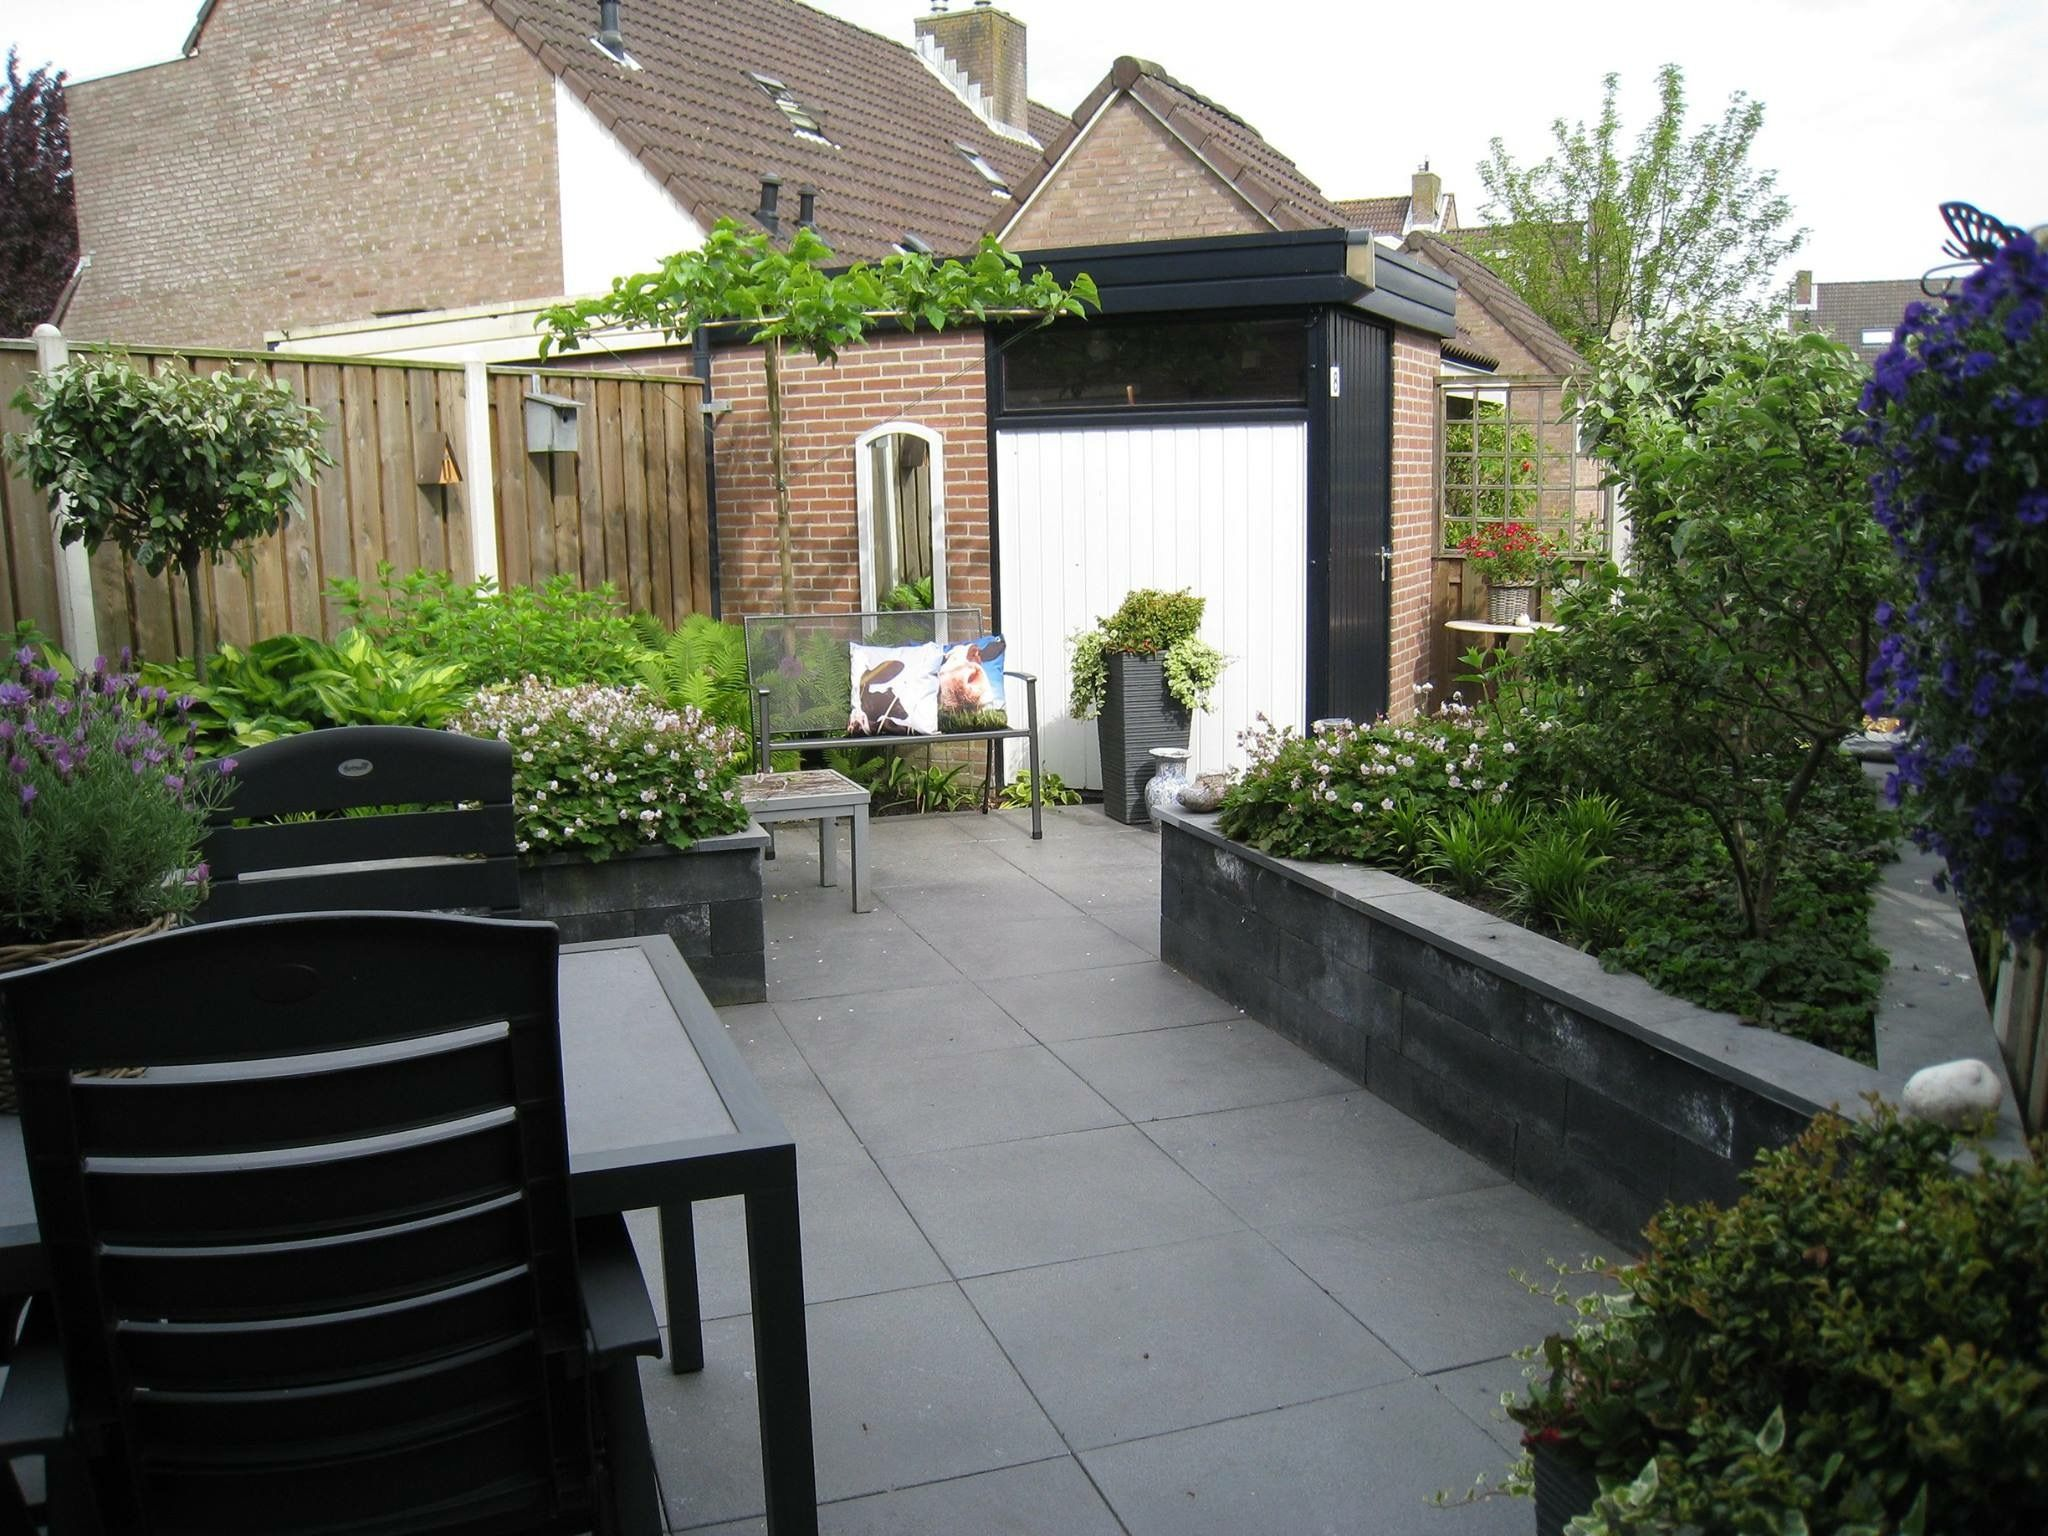 1000+ images about Tuin ideeën on Pinterest